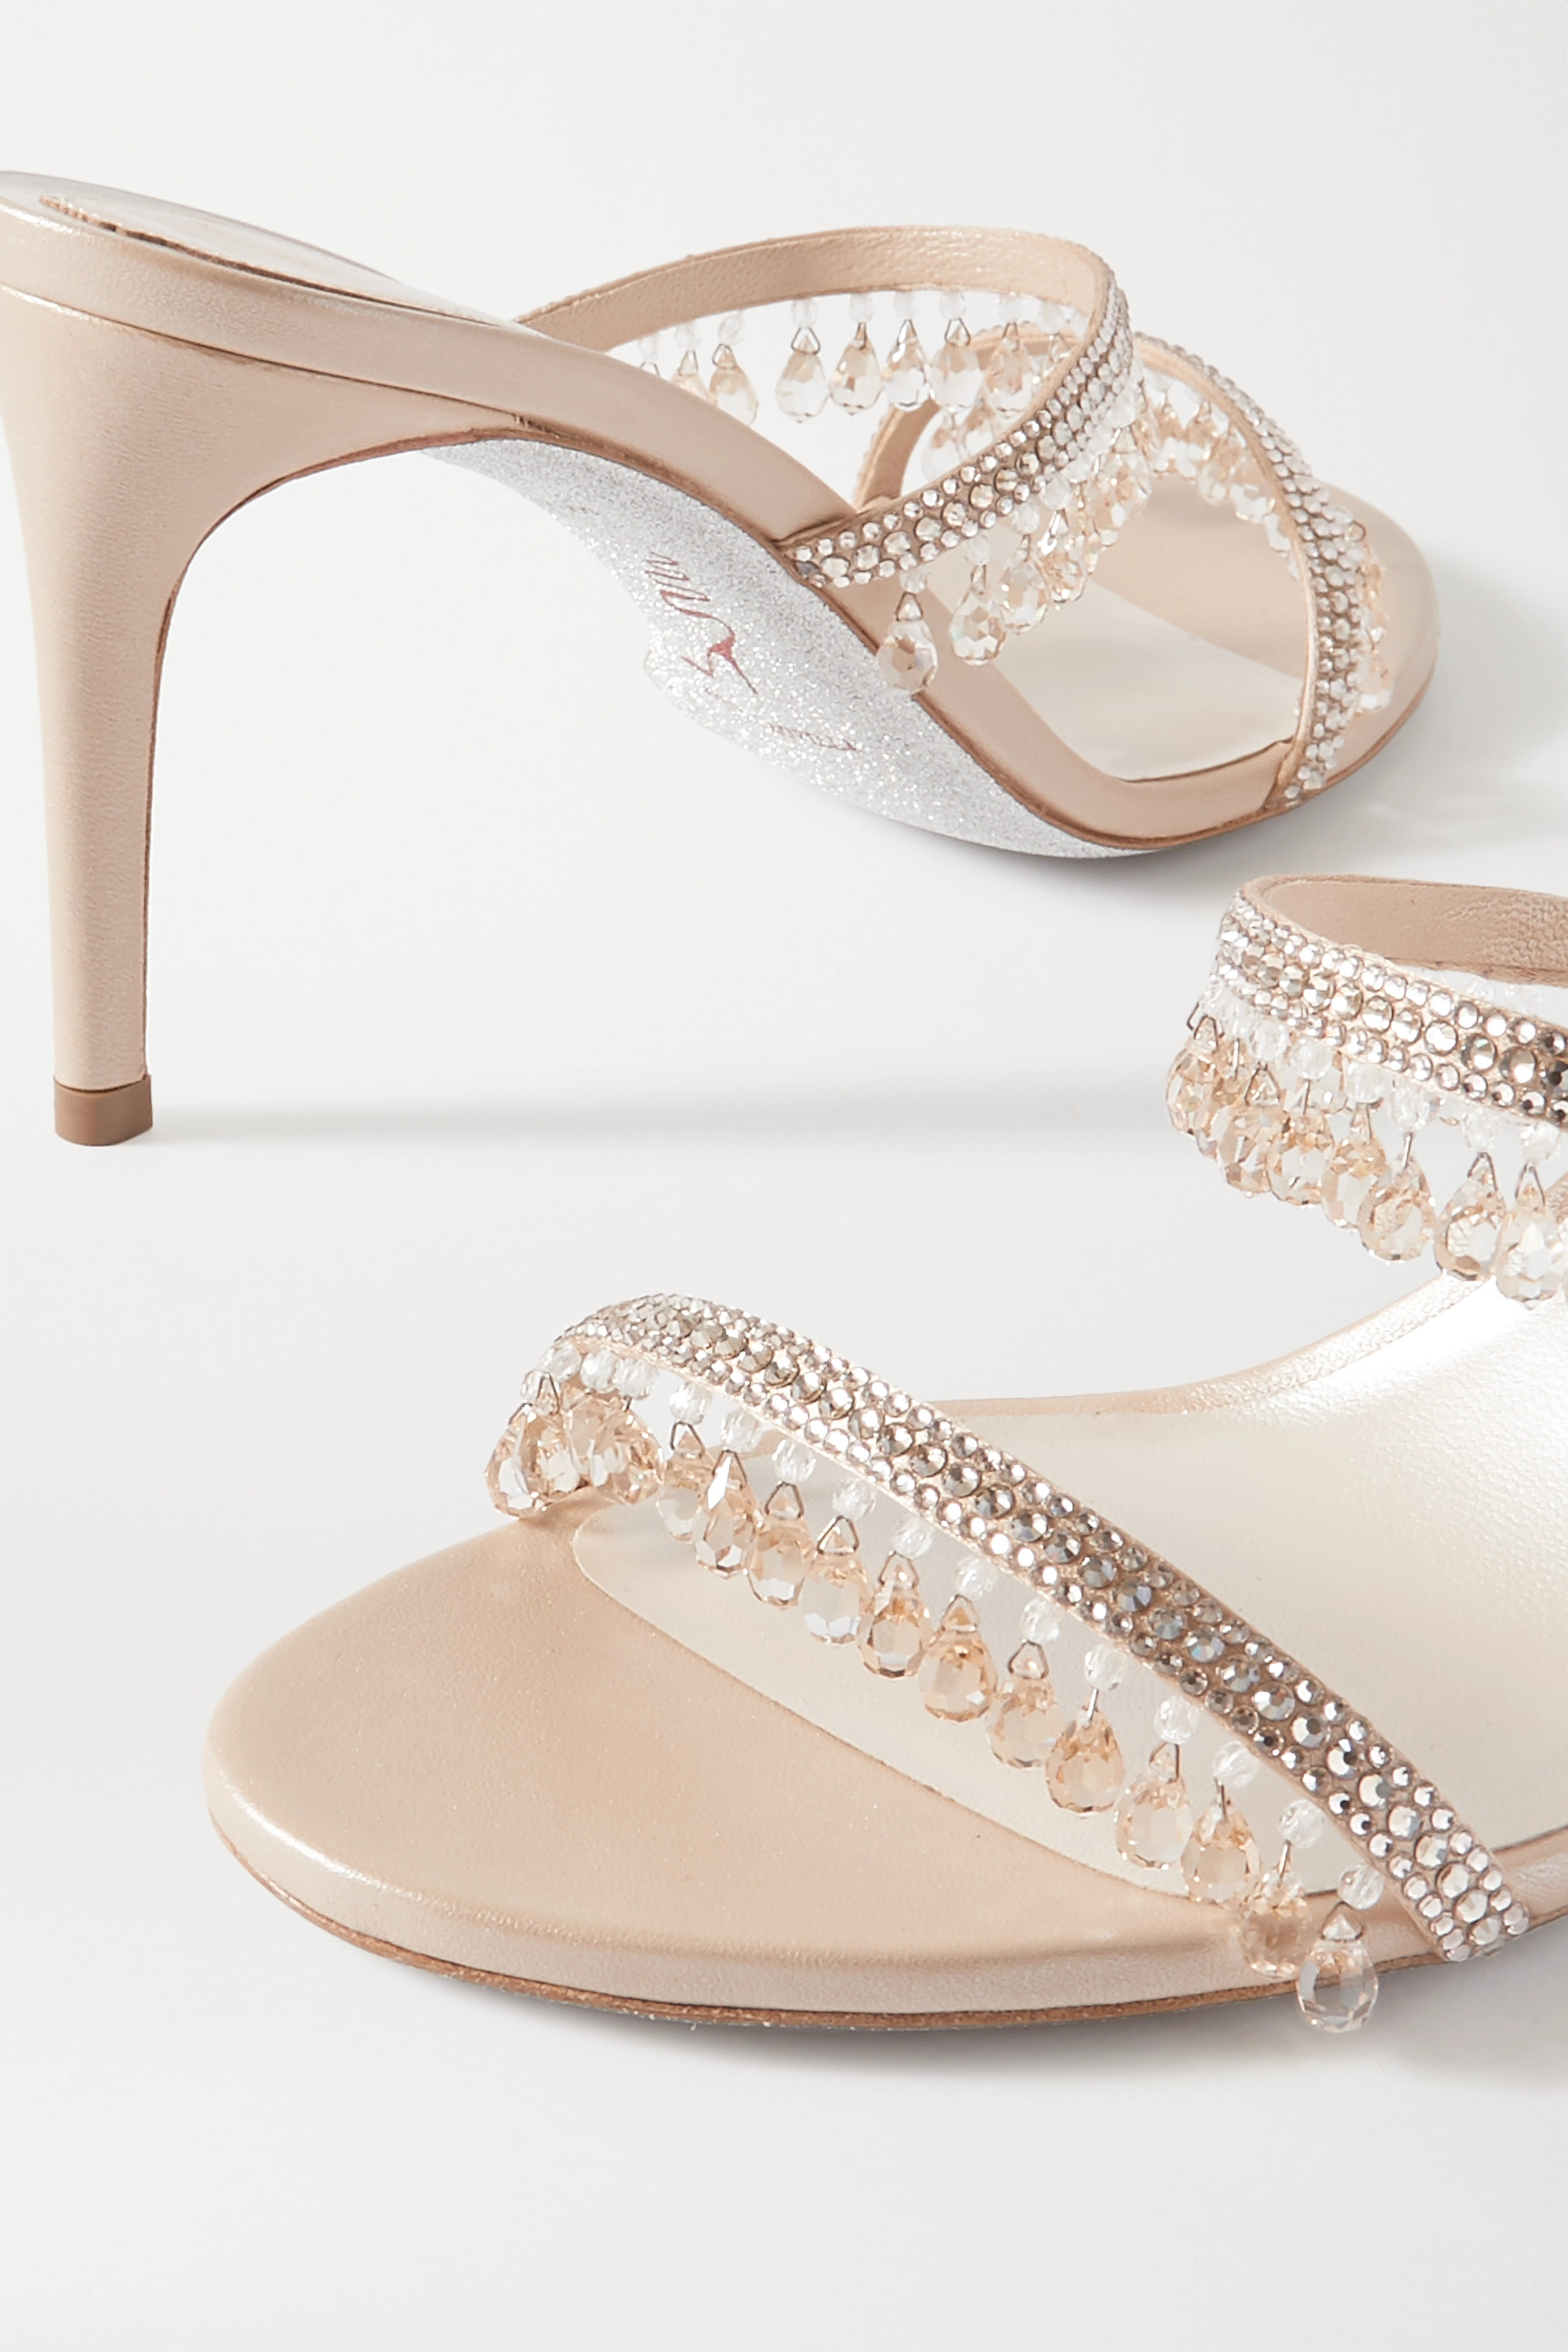 René Caovilla Crystal-embellished satin and metallic leather sandals